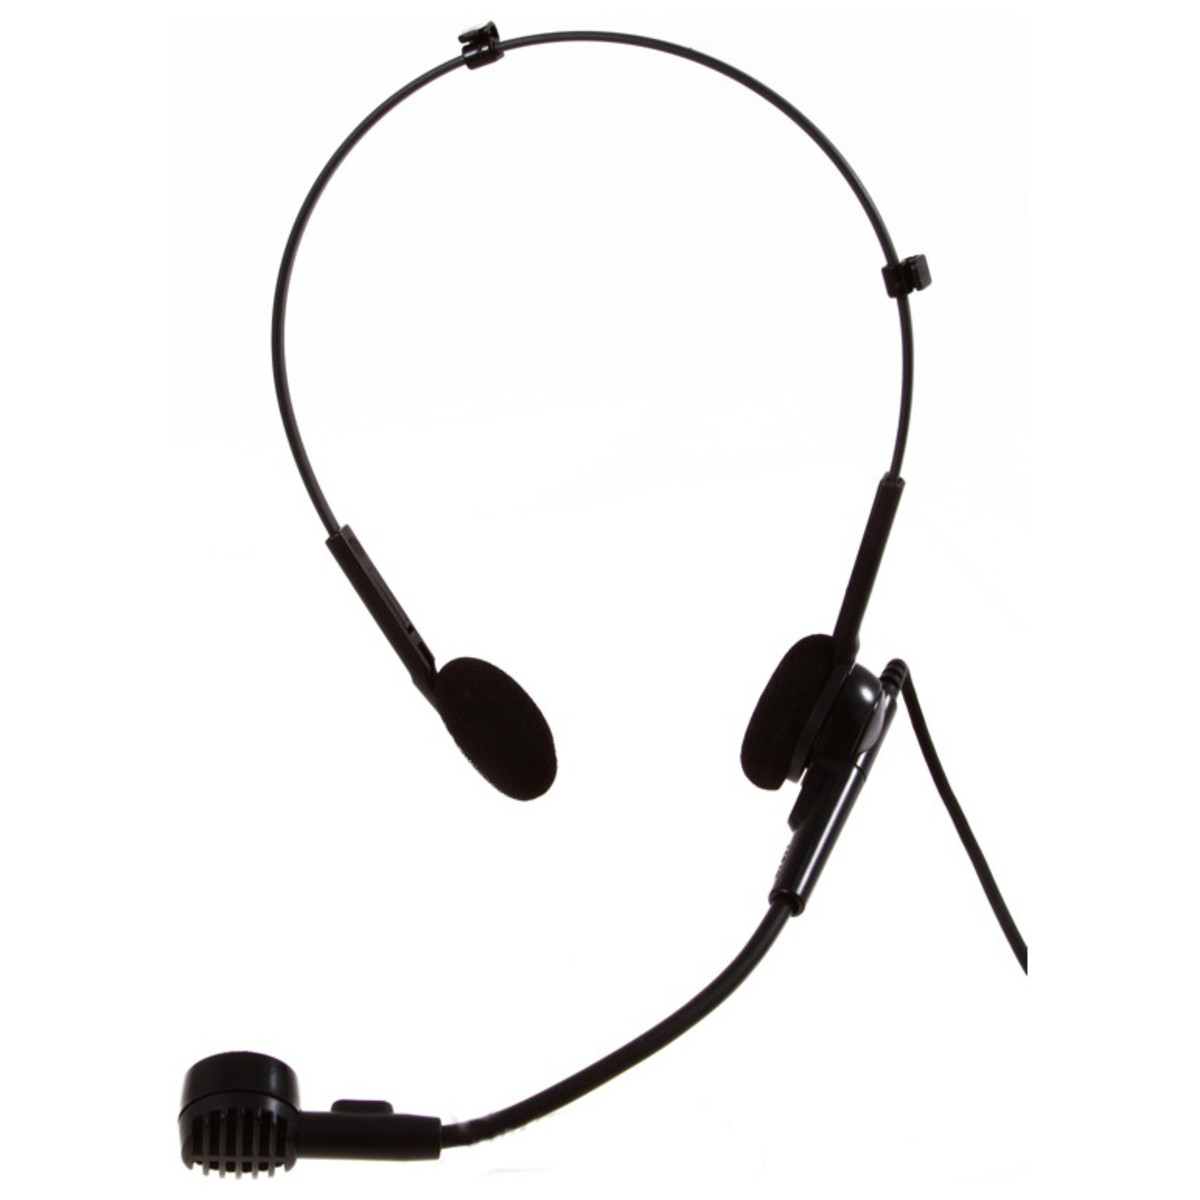 Audio Technica Pro8hex Hypercardioid Dynamic Headset